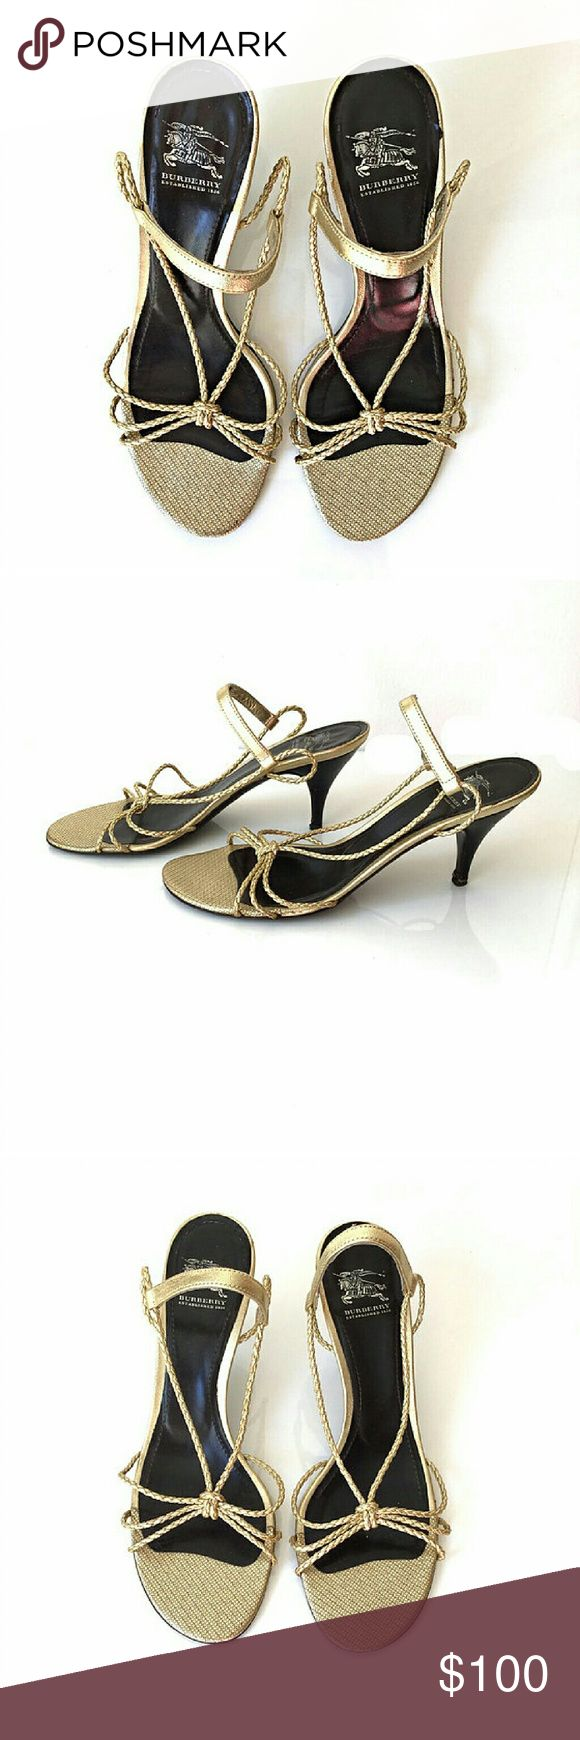 Burberry Metallic Gold Strappy Heels Gorgeous gold kitten heels! In good condition Wear on the sole and heel.  Some creases on insole from wear. Size 39. US equivalent 9. Ships within one day Burberry Shoes Heels